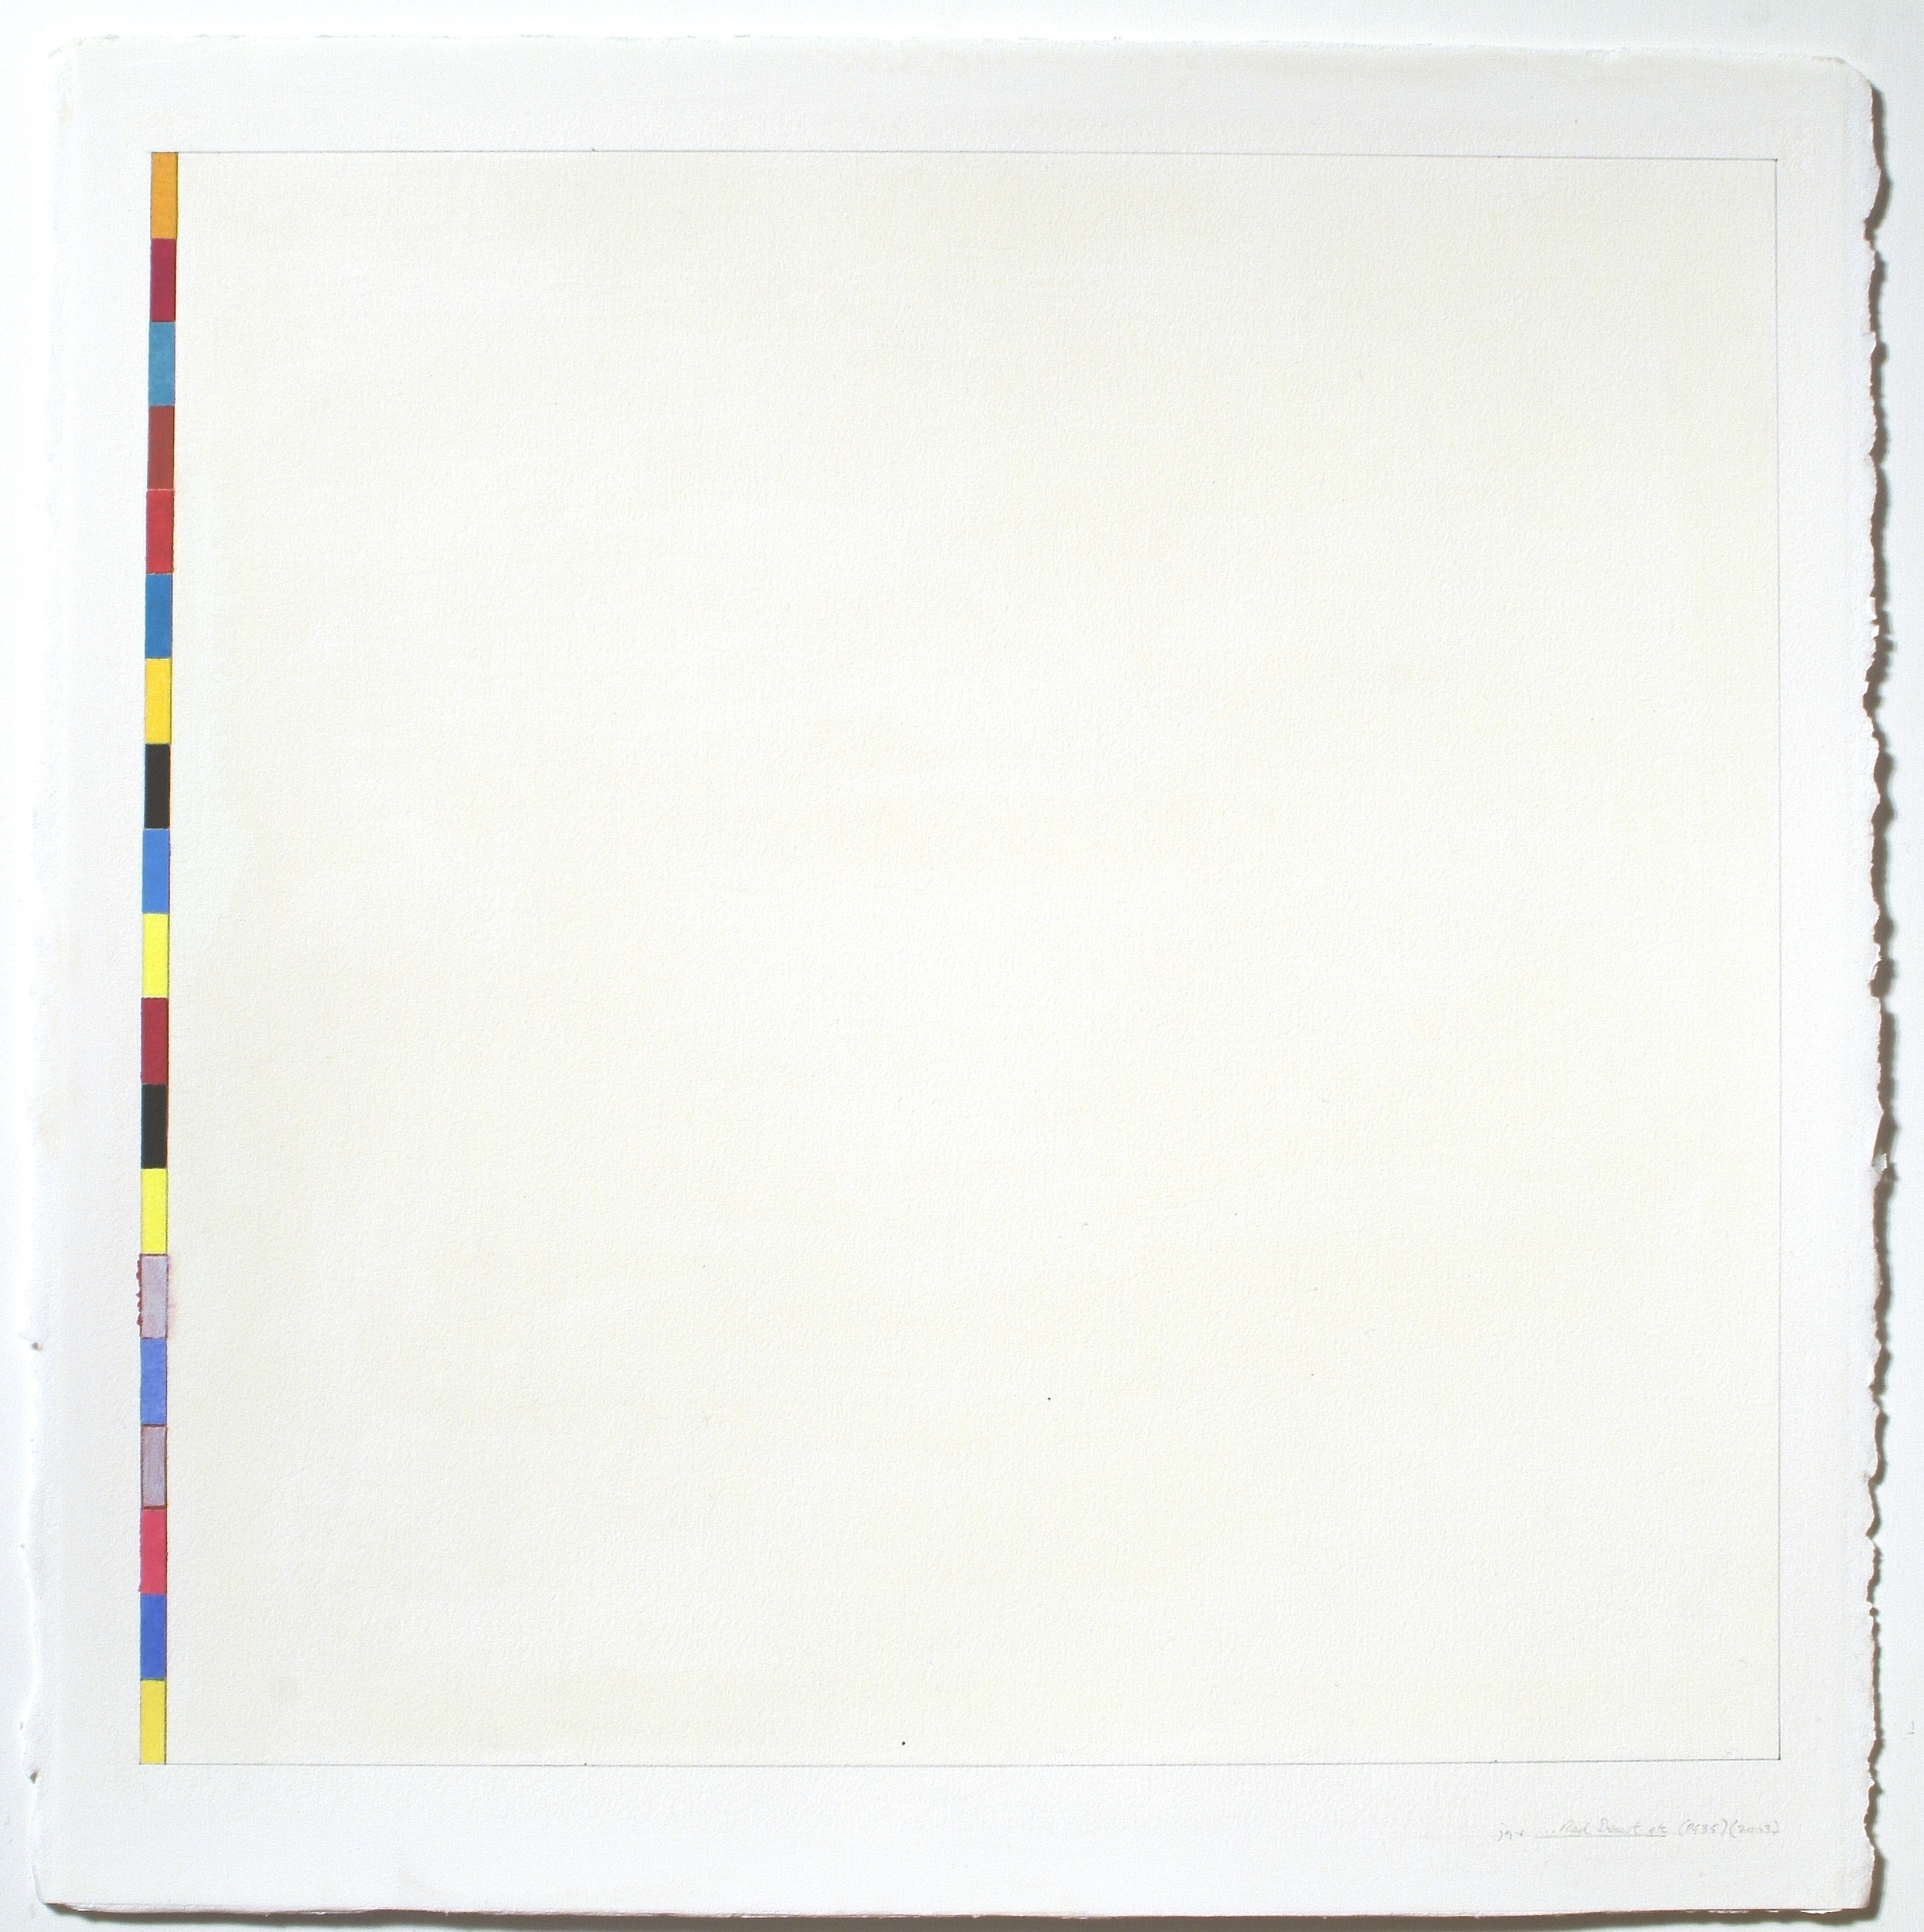 """Untitled (PG35), 2003, gouache on paper, 20 1/8""""x20""""(image), 23 3/8""""x23 1/8""""(paper)"""""""